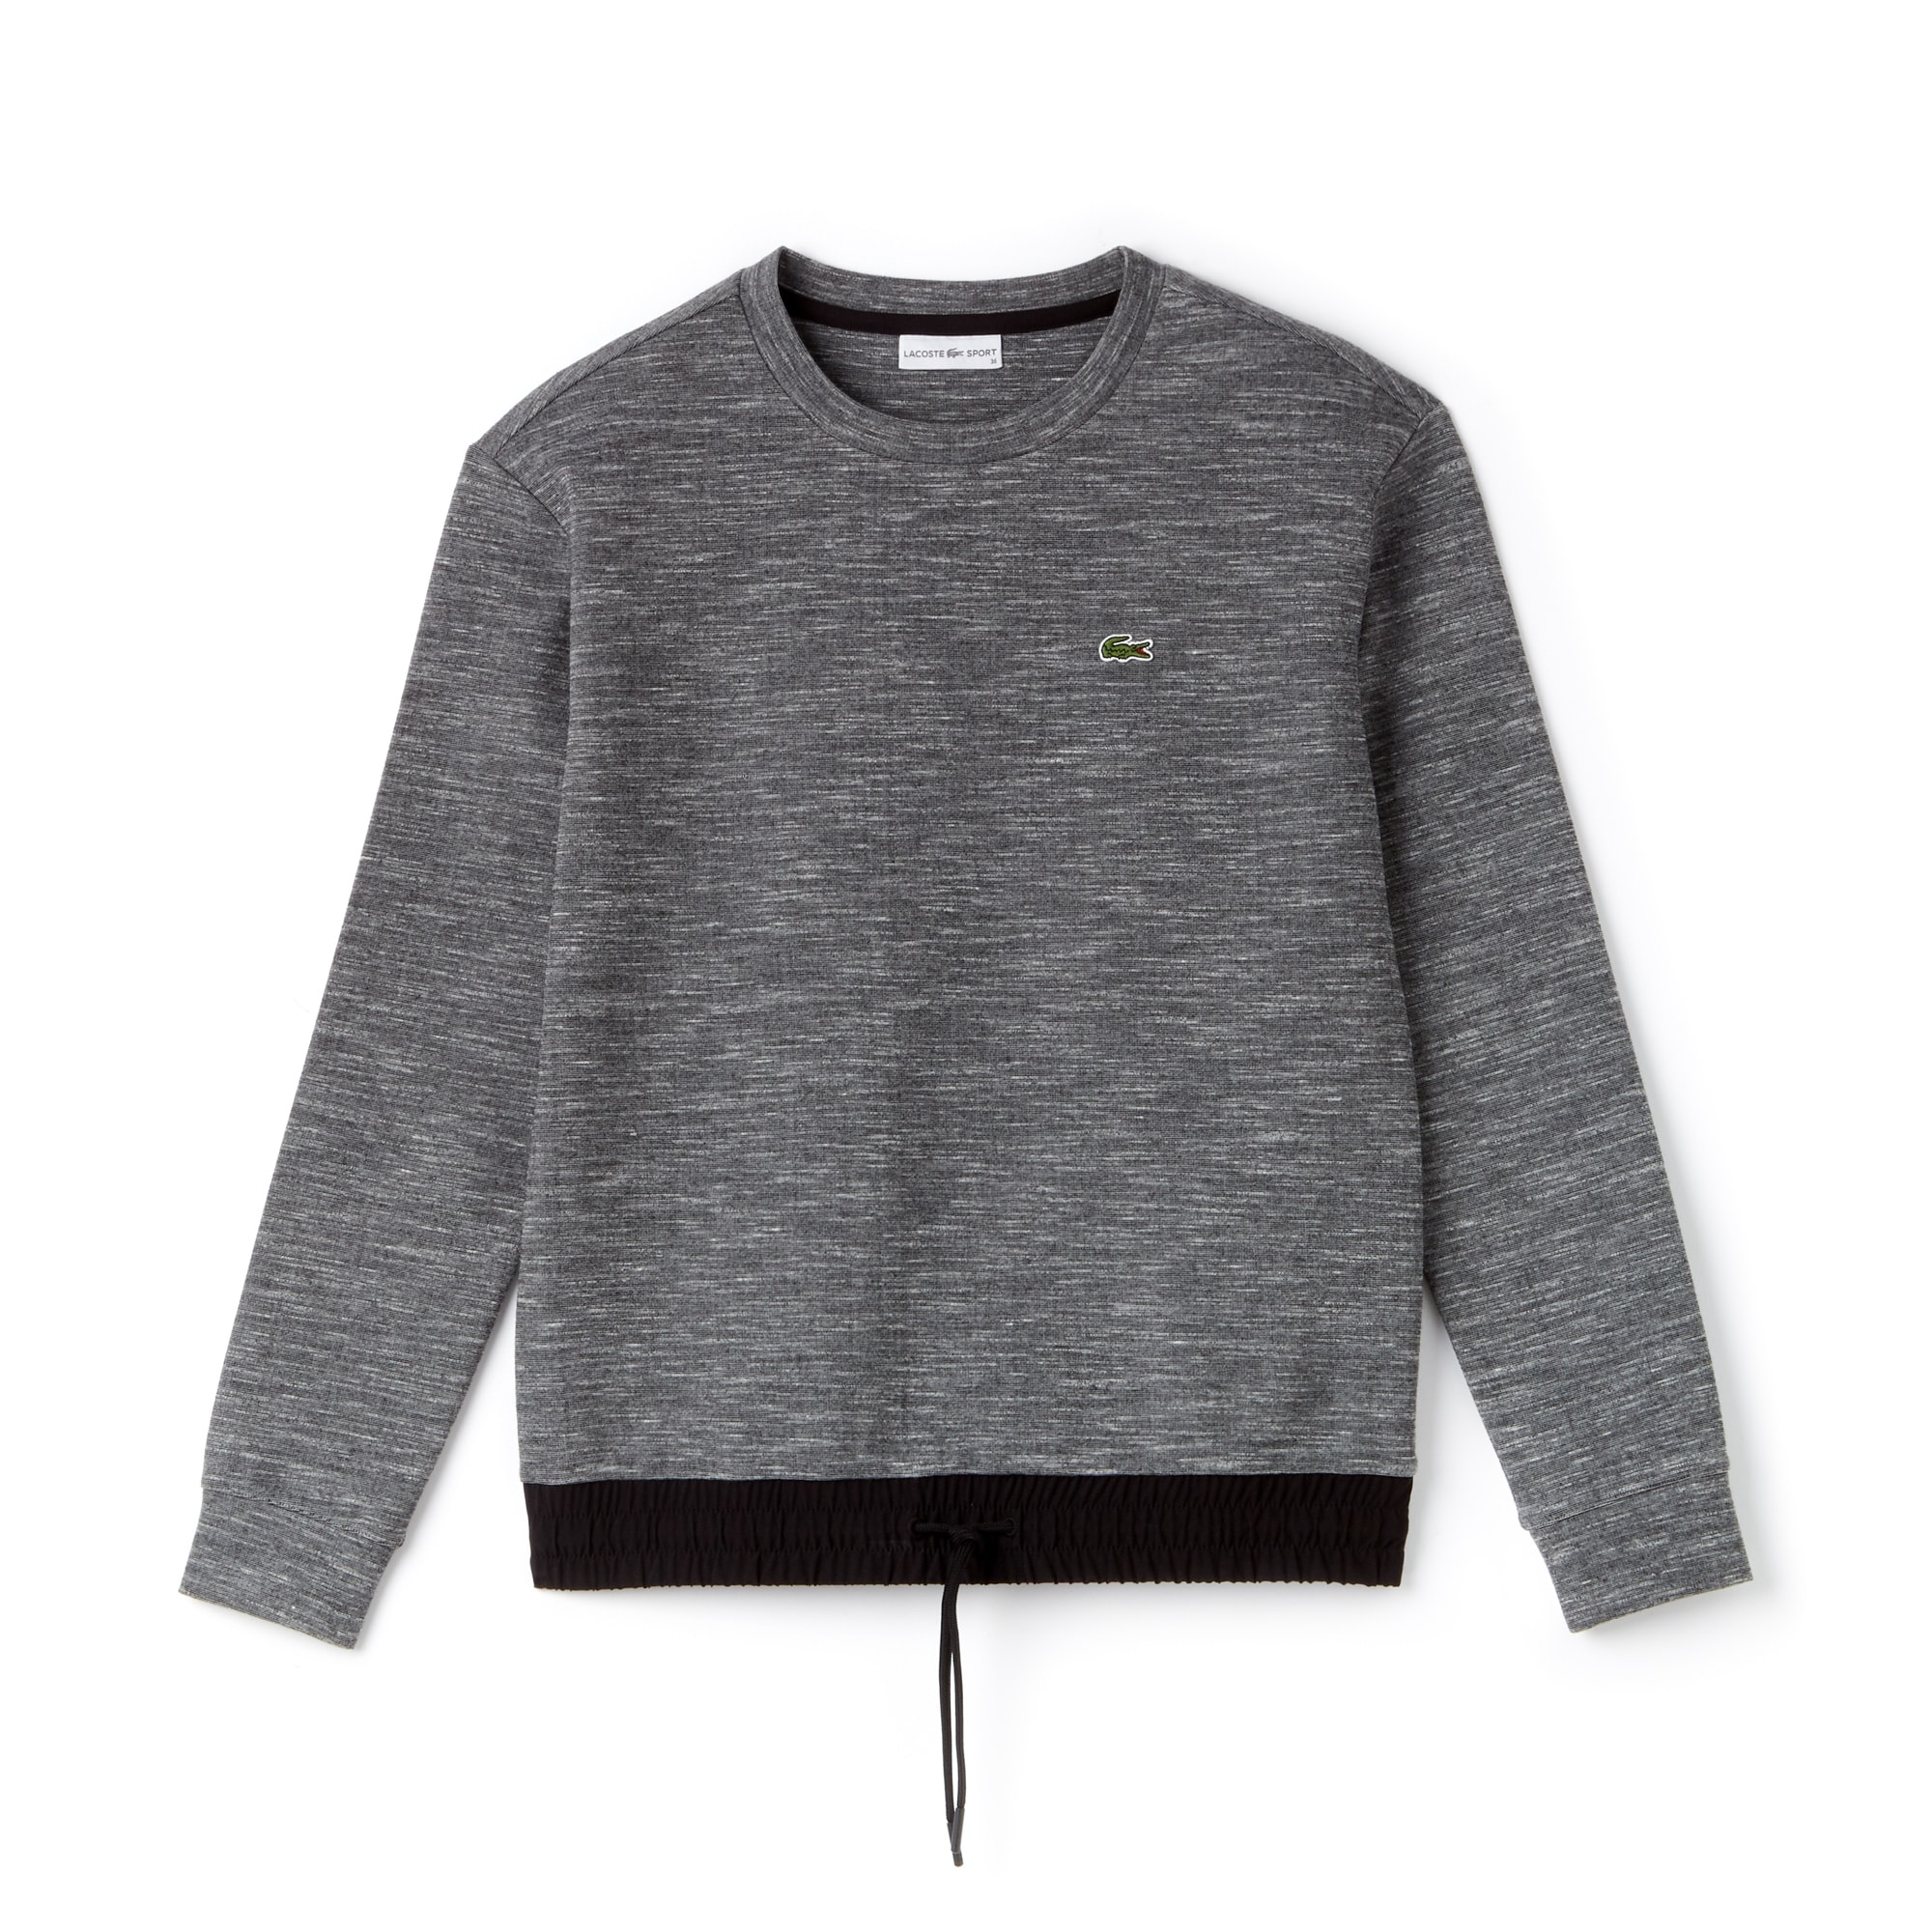 Damen LACOSTE SPORT Fleece und Taft Tennis-Sweatshirt